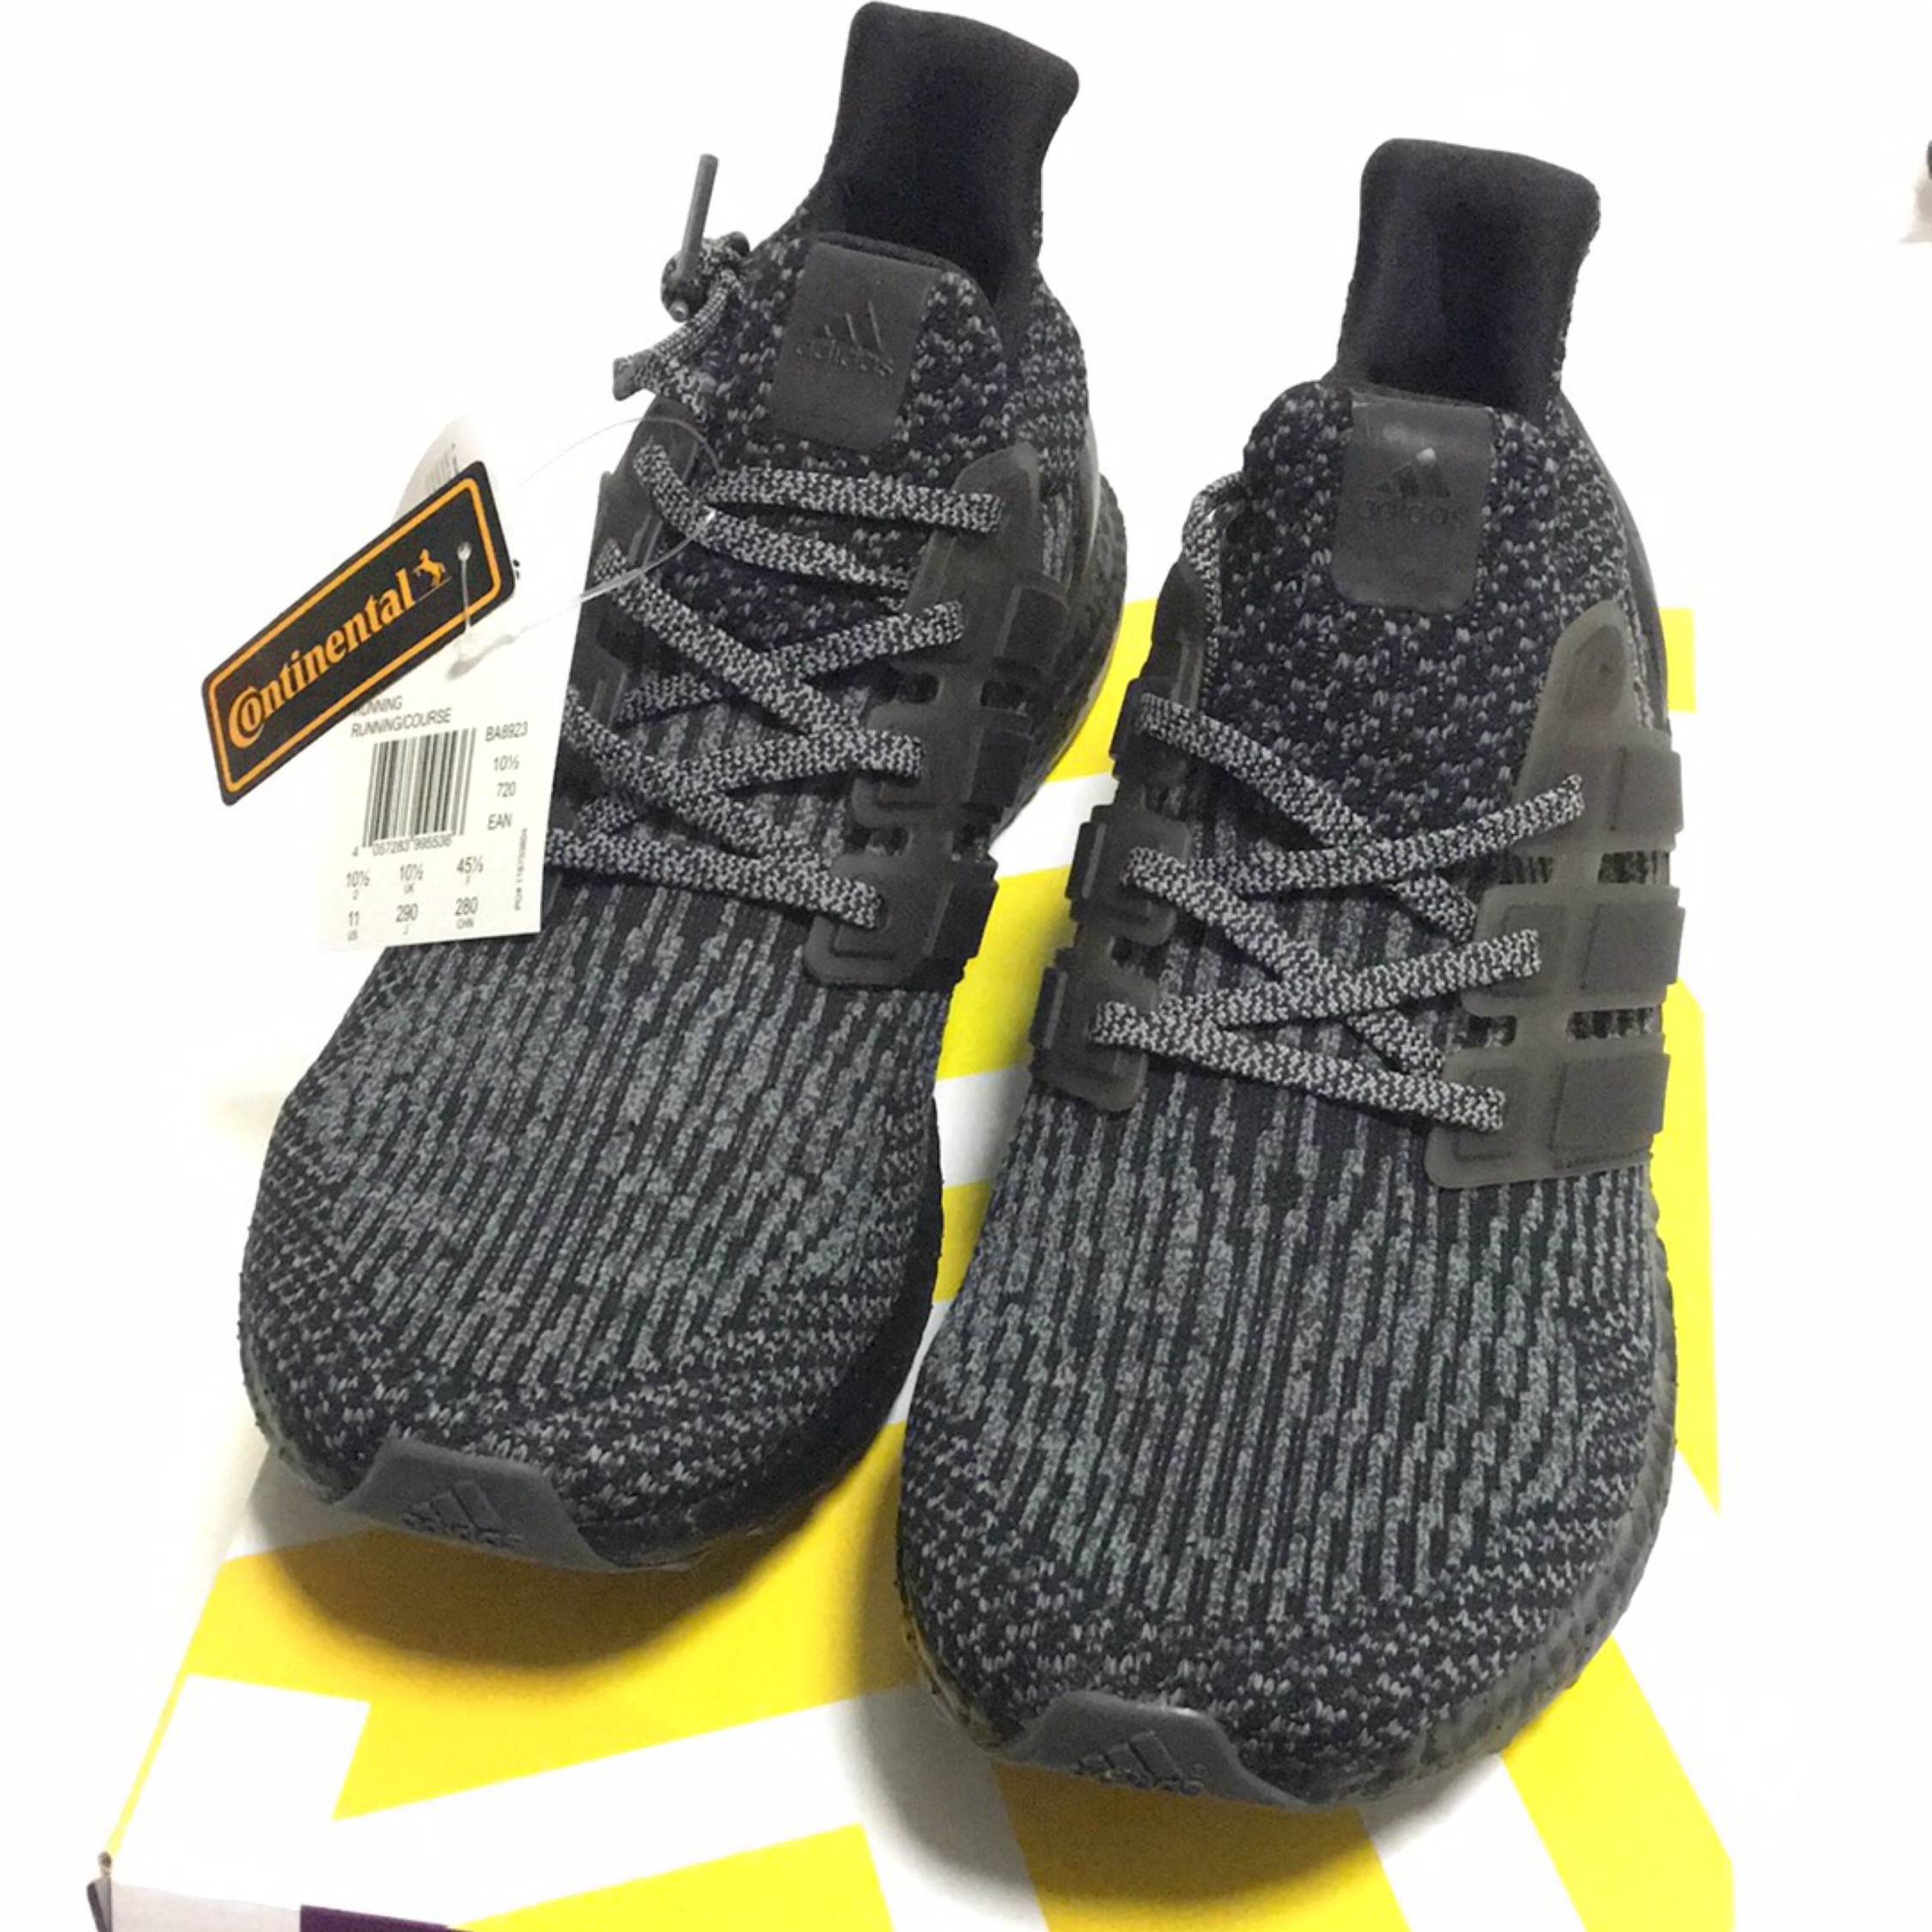 low priced f87ba 0f61c Adidas/Nike/Nmd/City Sock/Louboutin/Ultra Boost